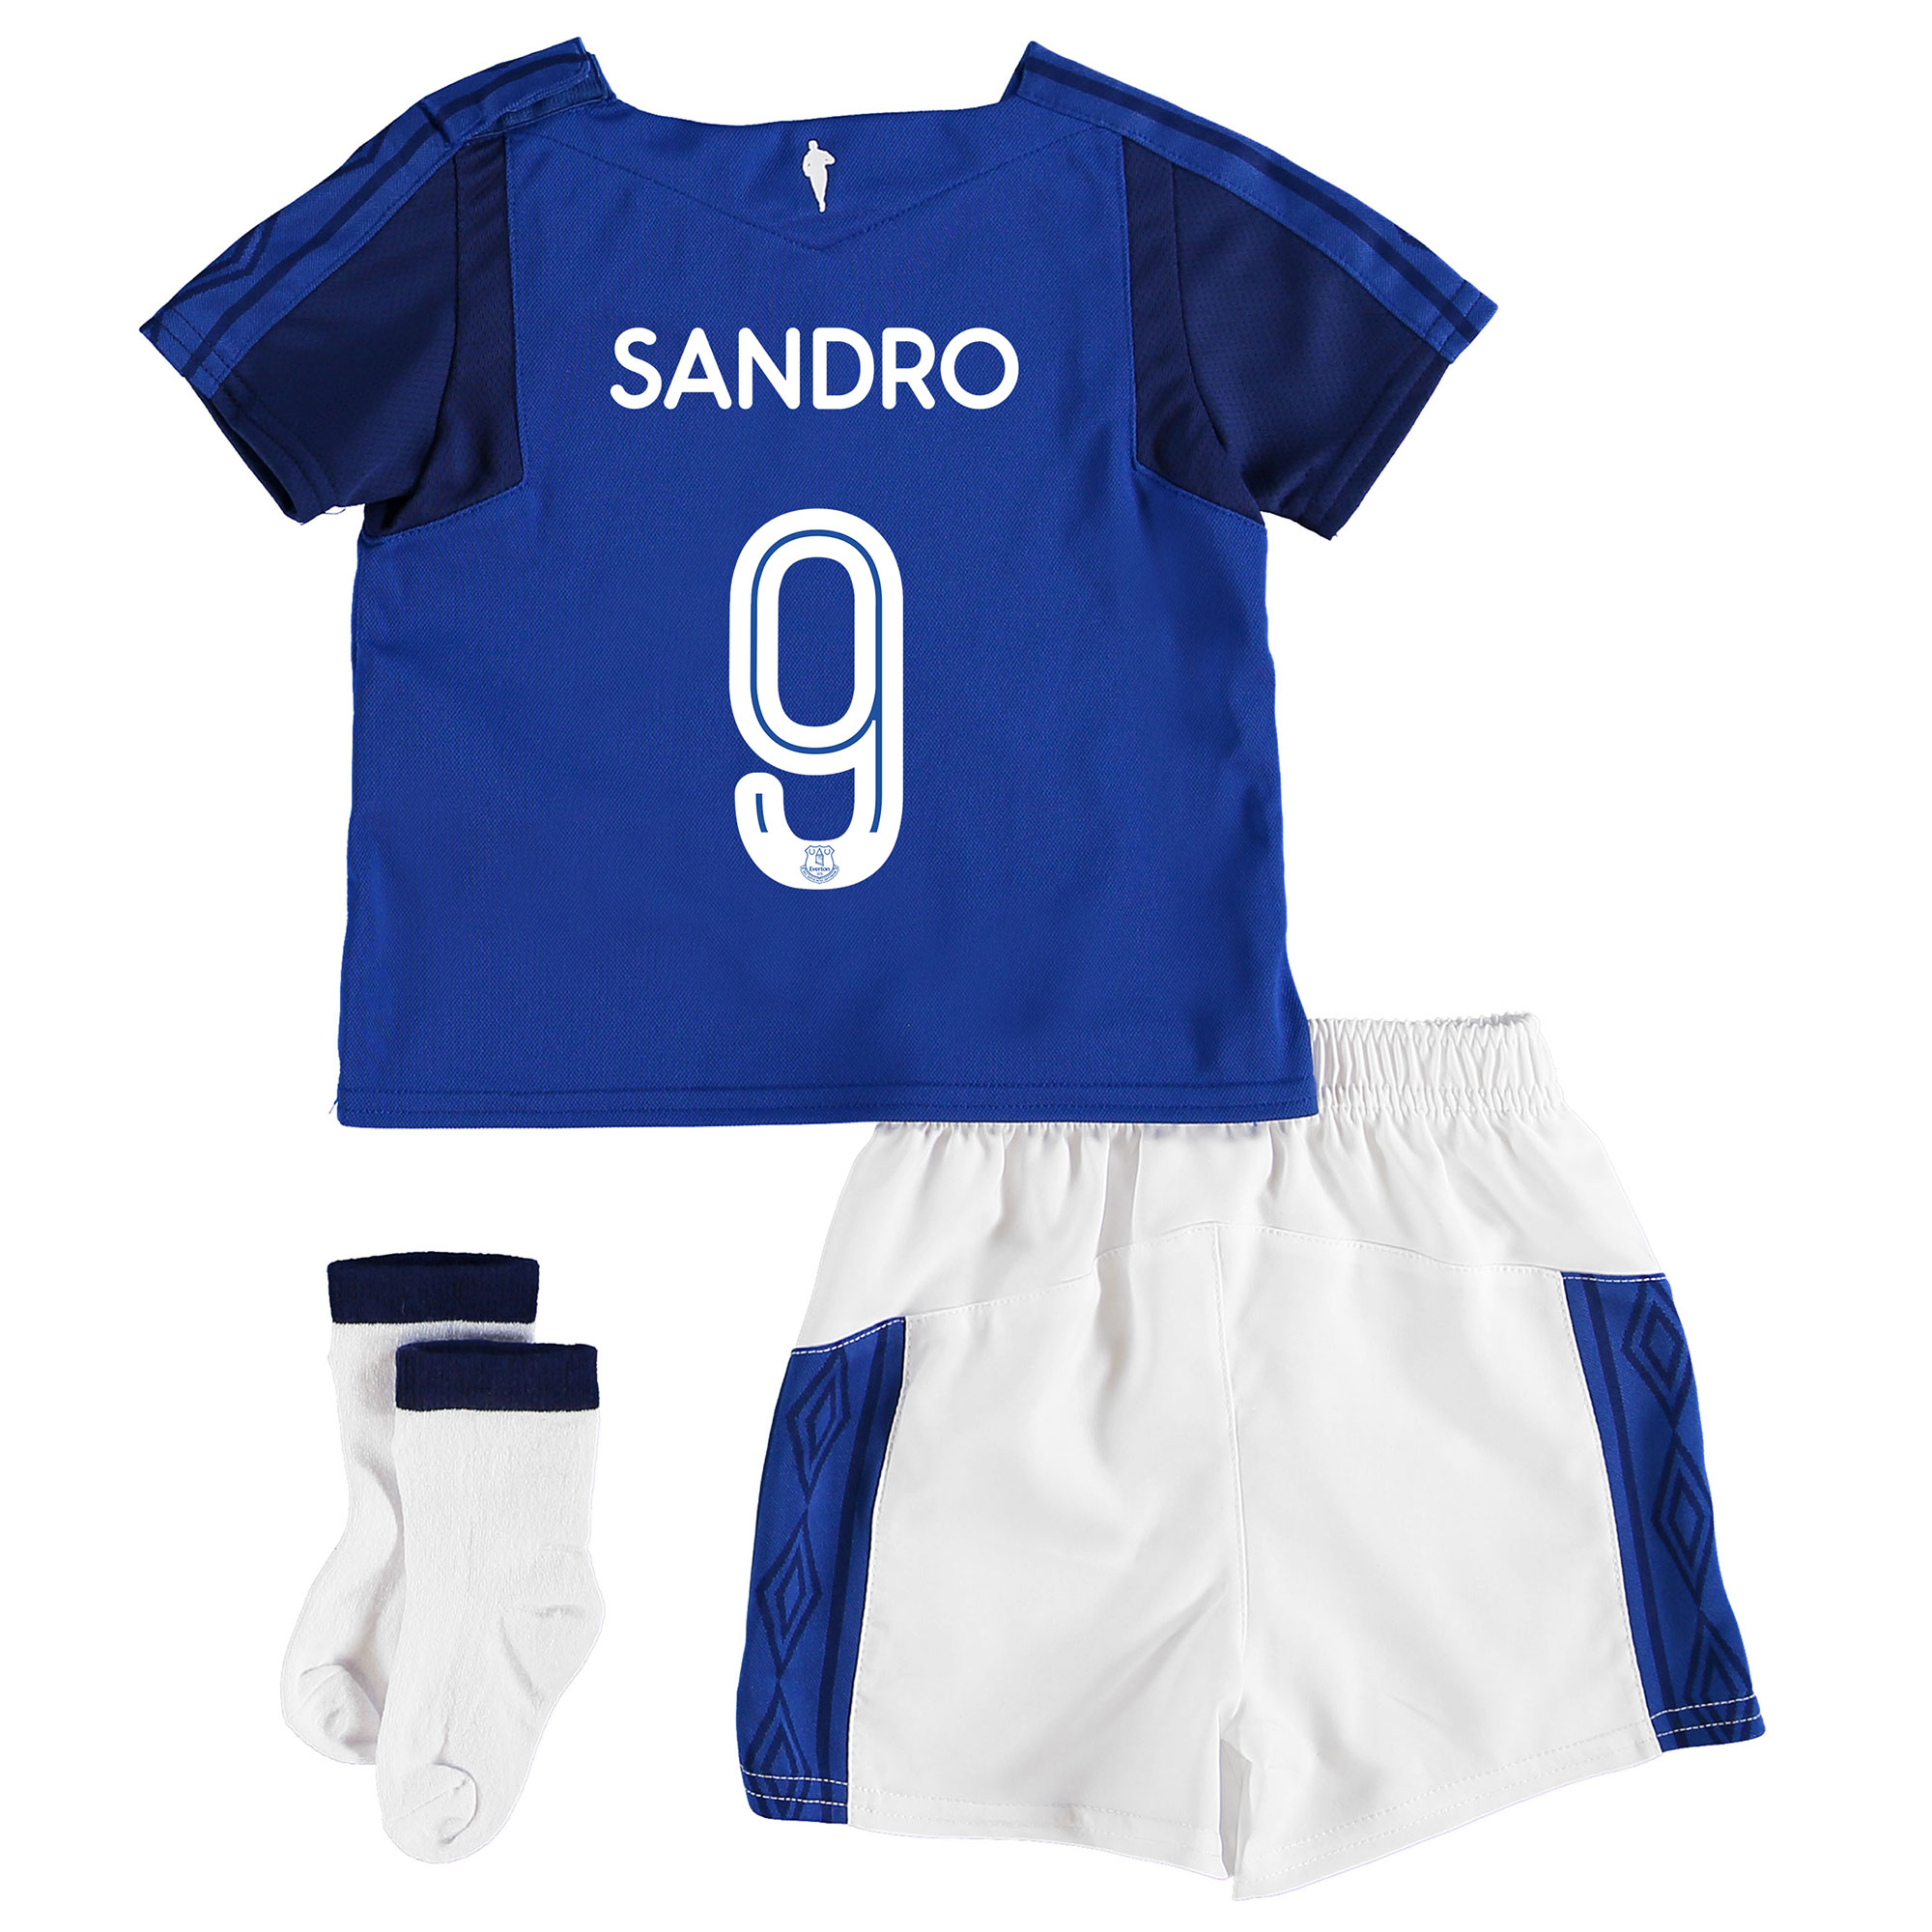 Image of Everton Home Cup Baby Kit 2017/18 with Sandro 9 printing